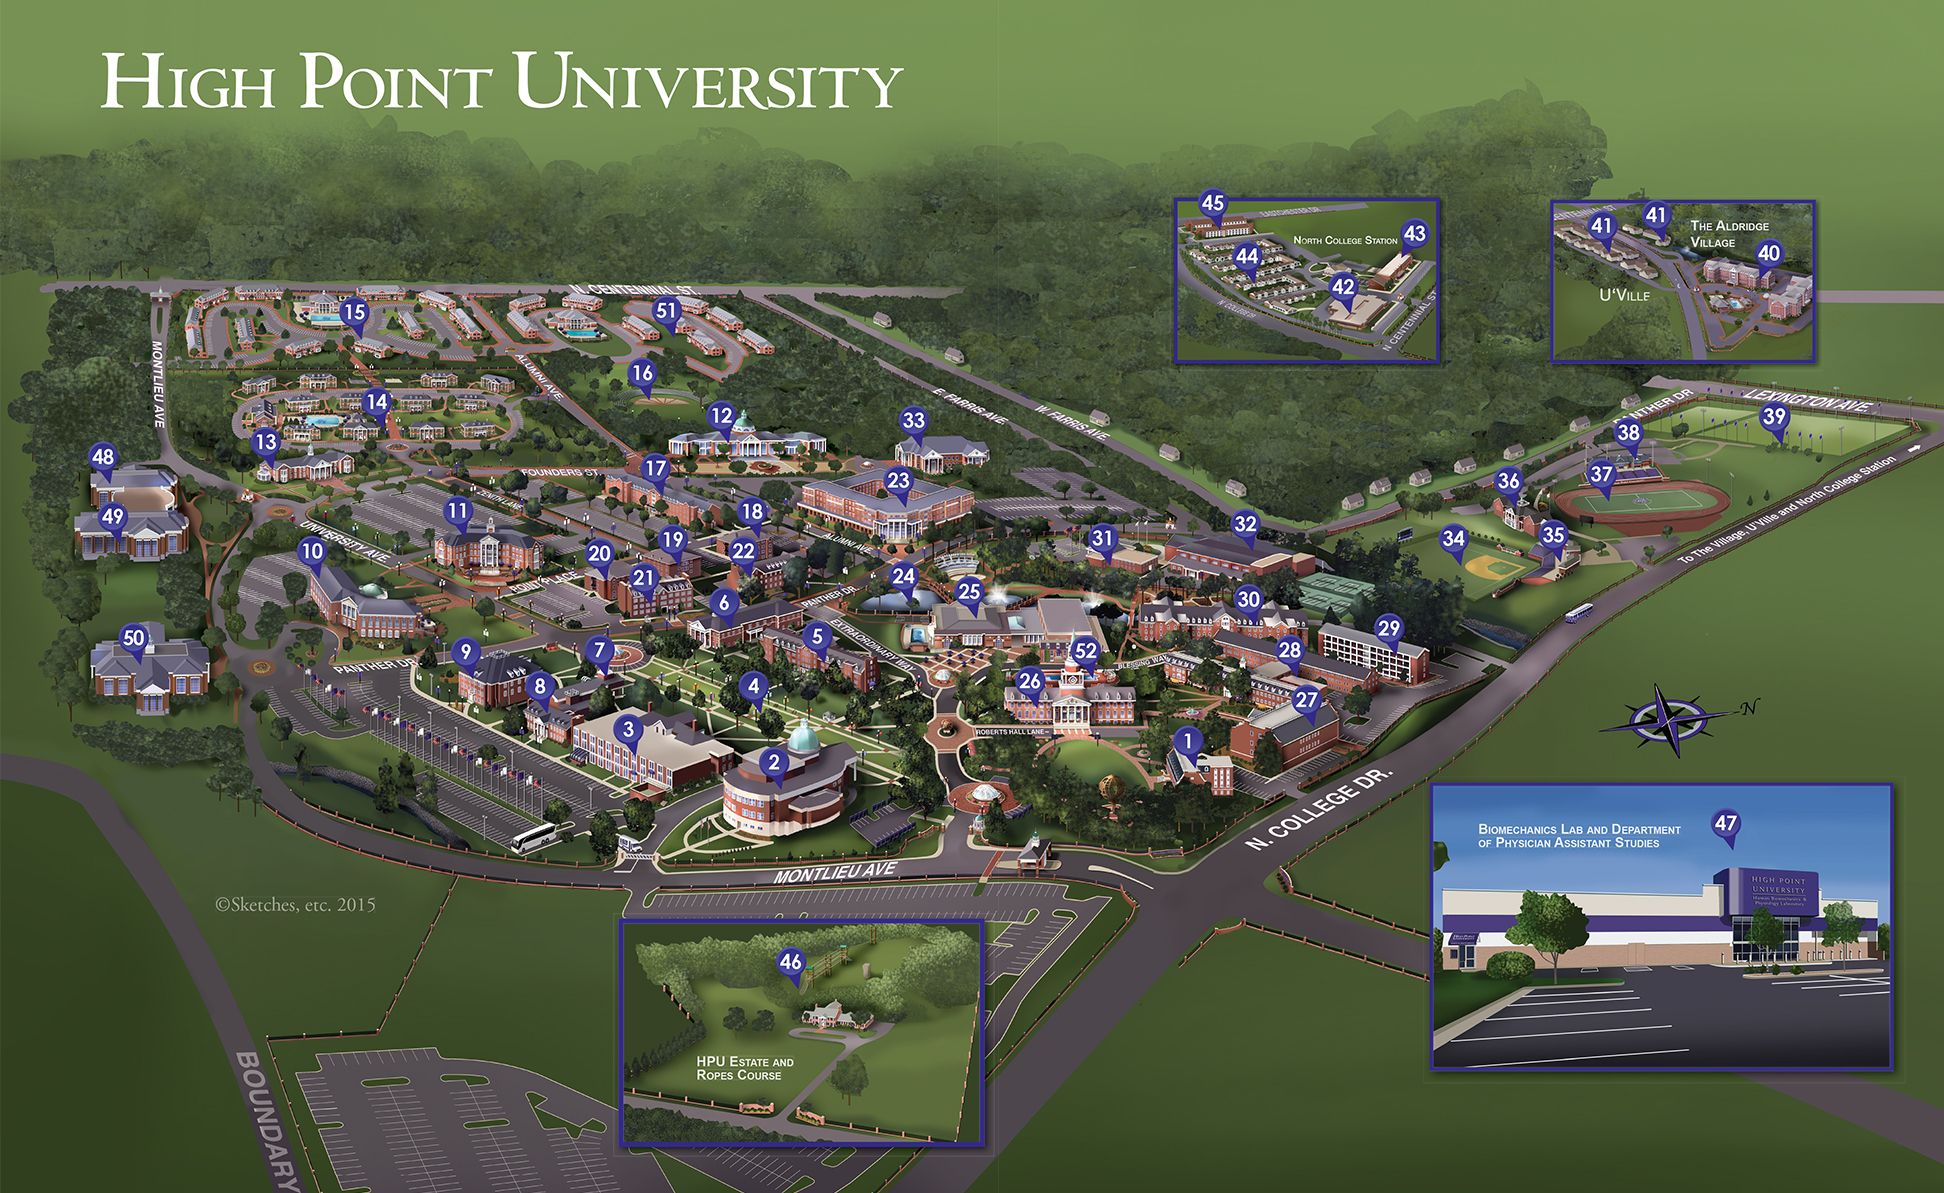 2015 map of campus